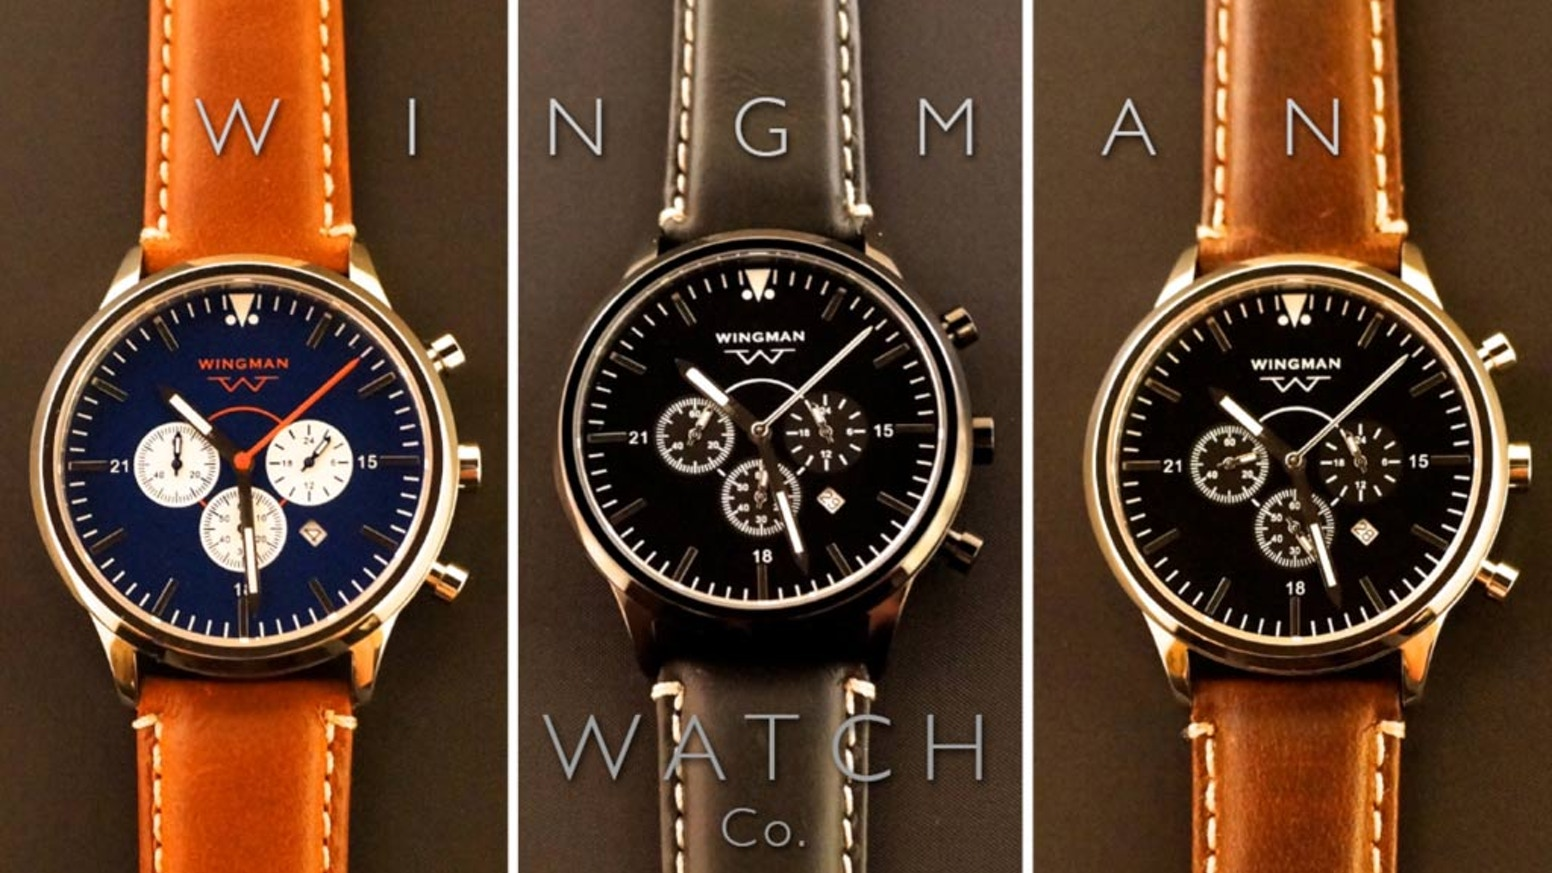 A finely crafted watch that combines classic aviation themes with modern day designs